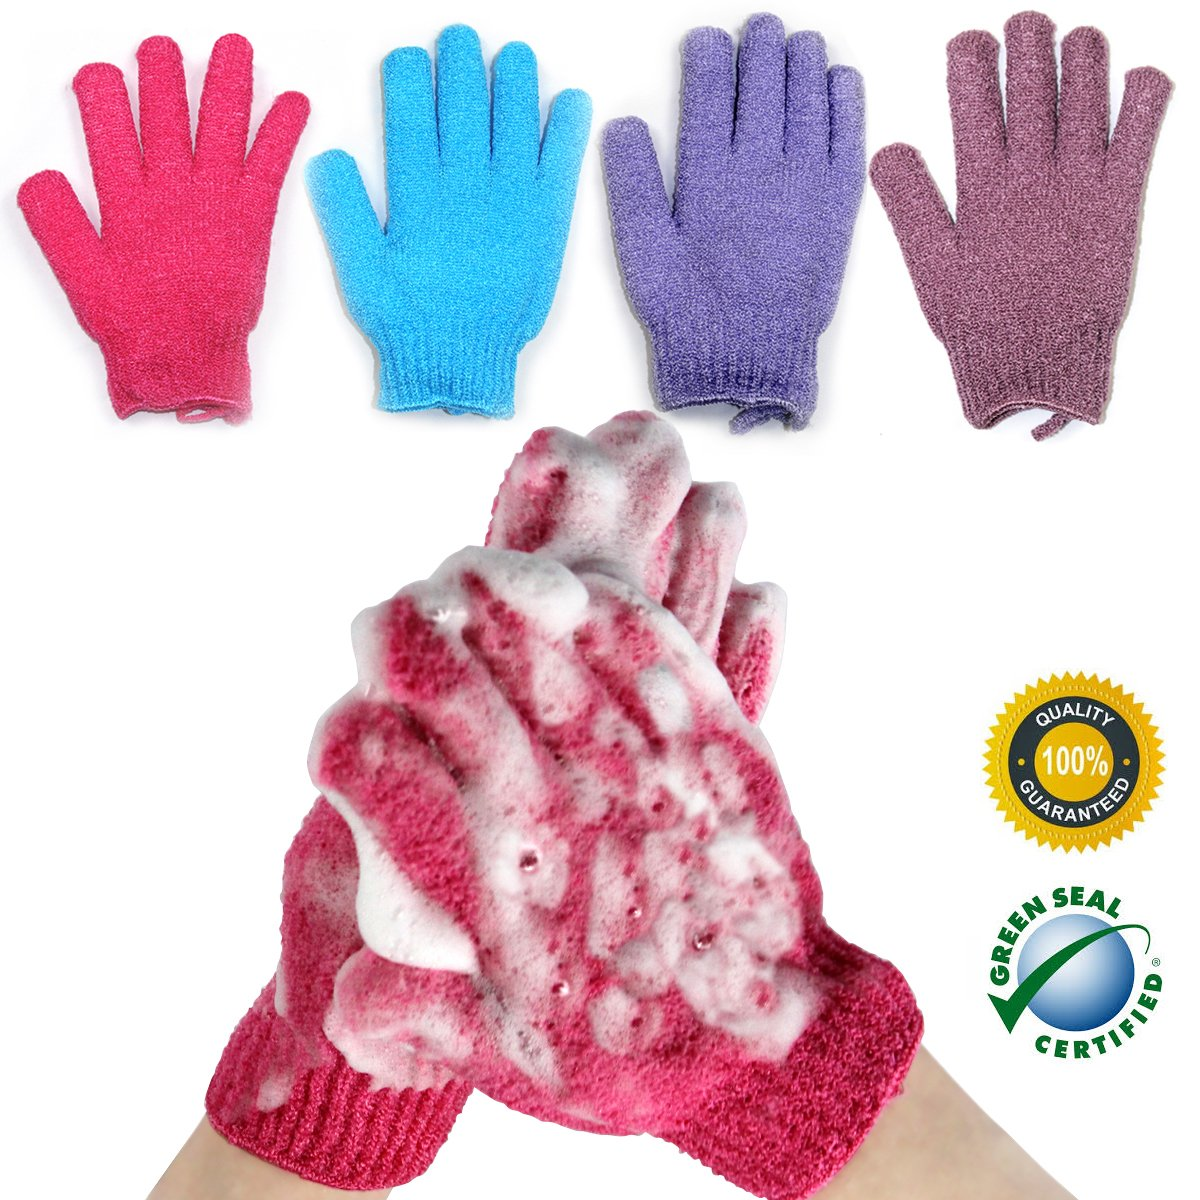 YEYIMEI Exfoliating Shower Gloves Bulk Bath Body Scrubber Spa deep cleansing healthy looking skin Heavy Exfoliating Dead Skin Cell Remover Christmas Gifts for Men Women Kids 4 Pairs (Package-001)